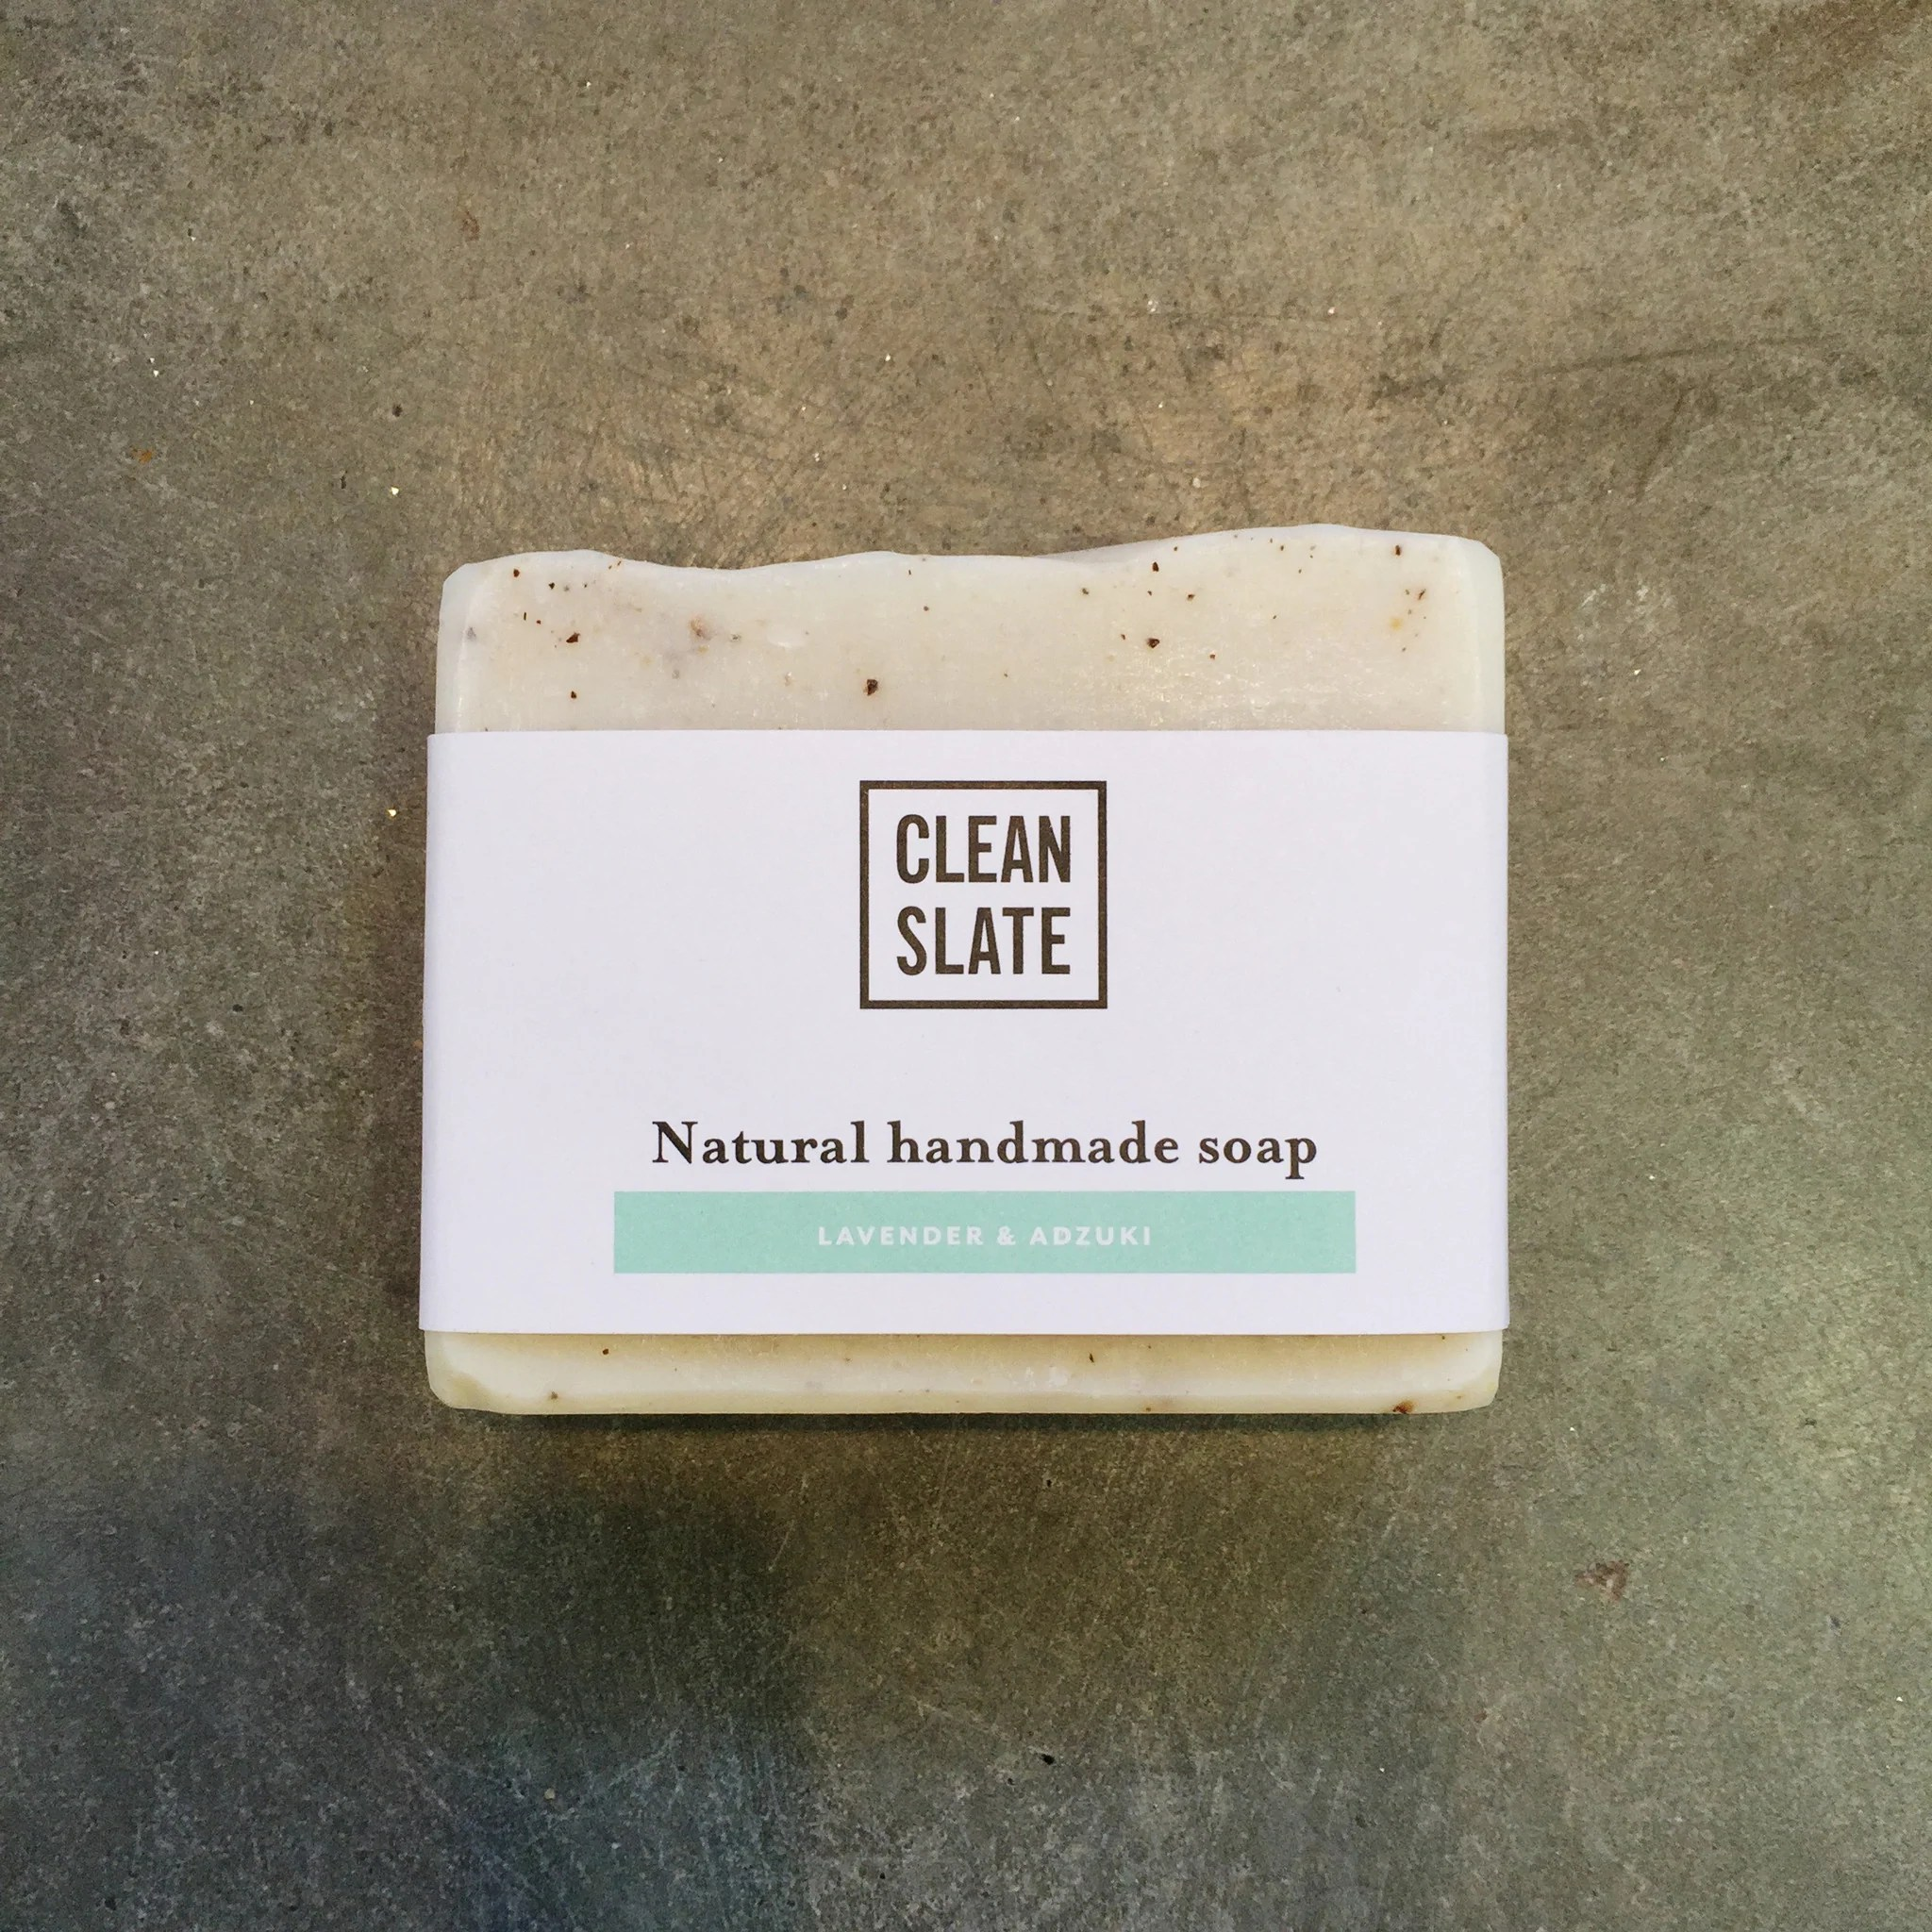 How To Clean Slate Countertops Clean Slate Lavender And Adzuki Bar Soap On A Whim Design